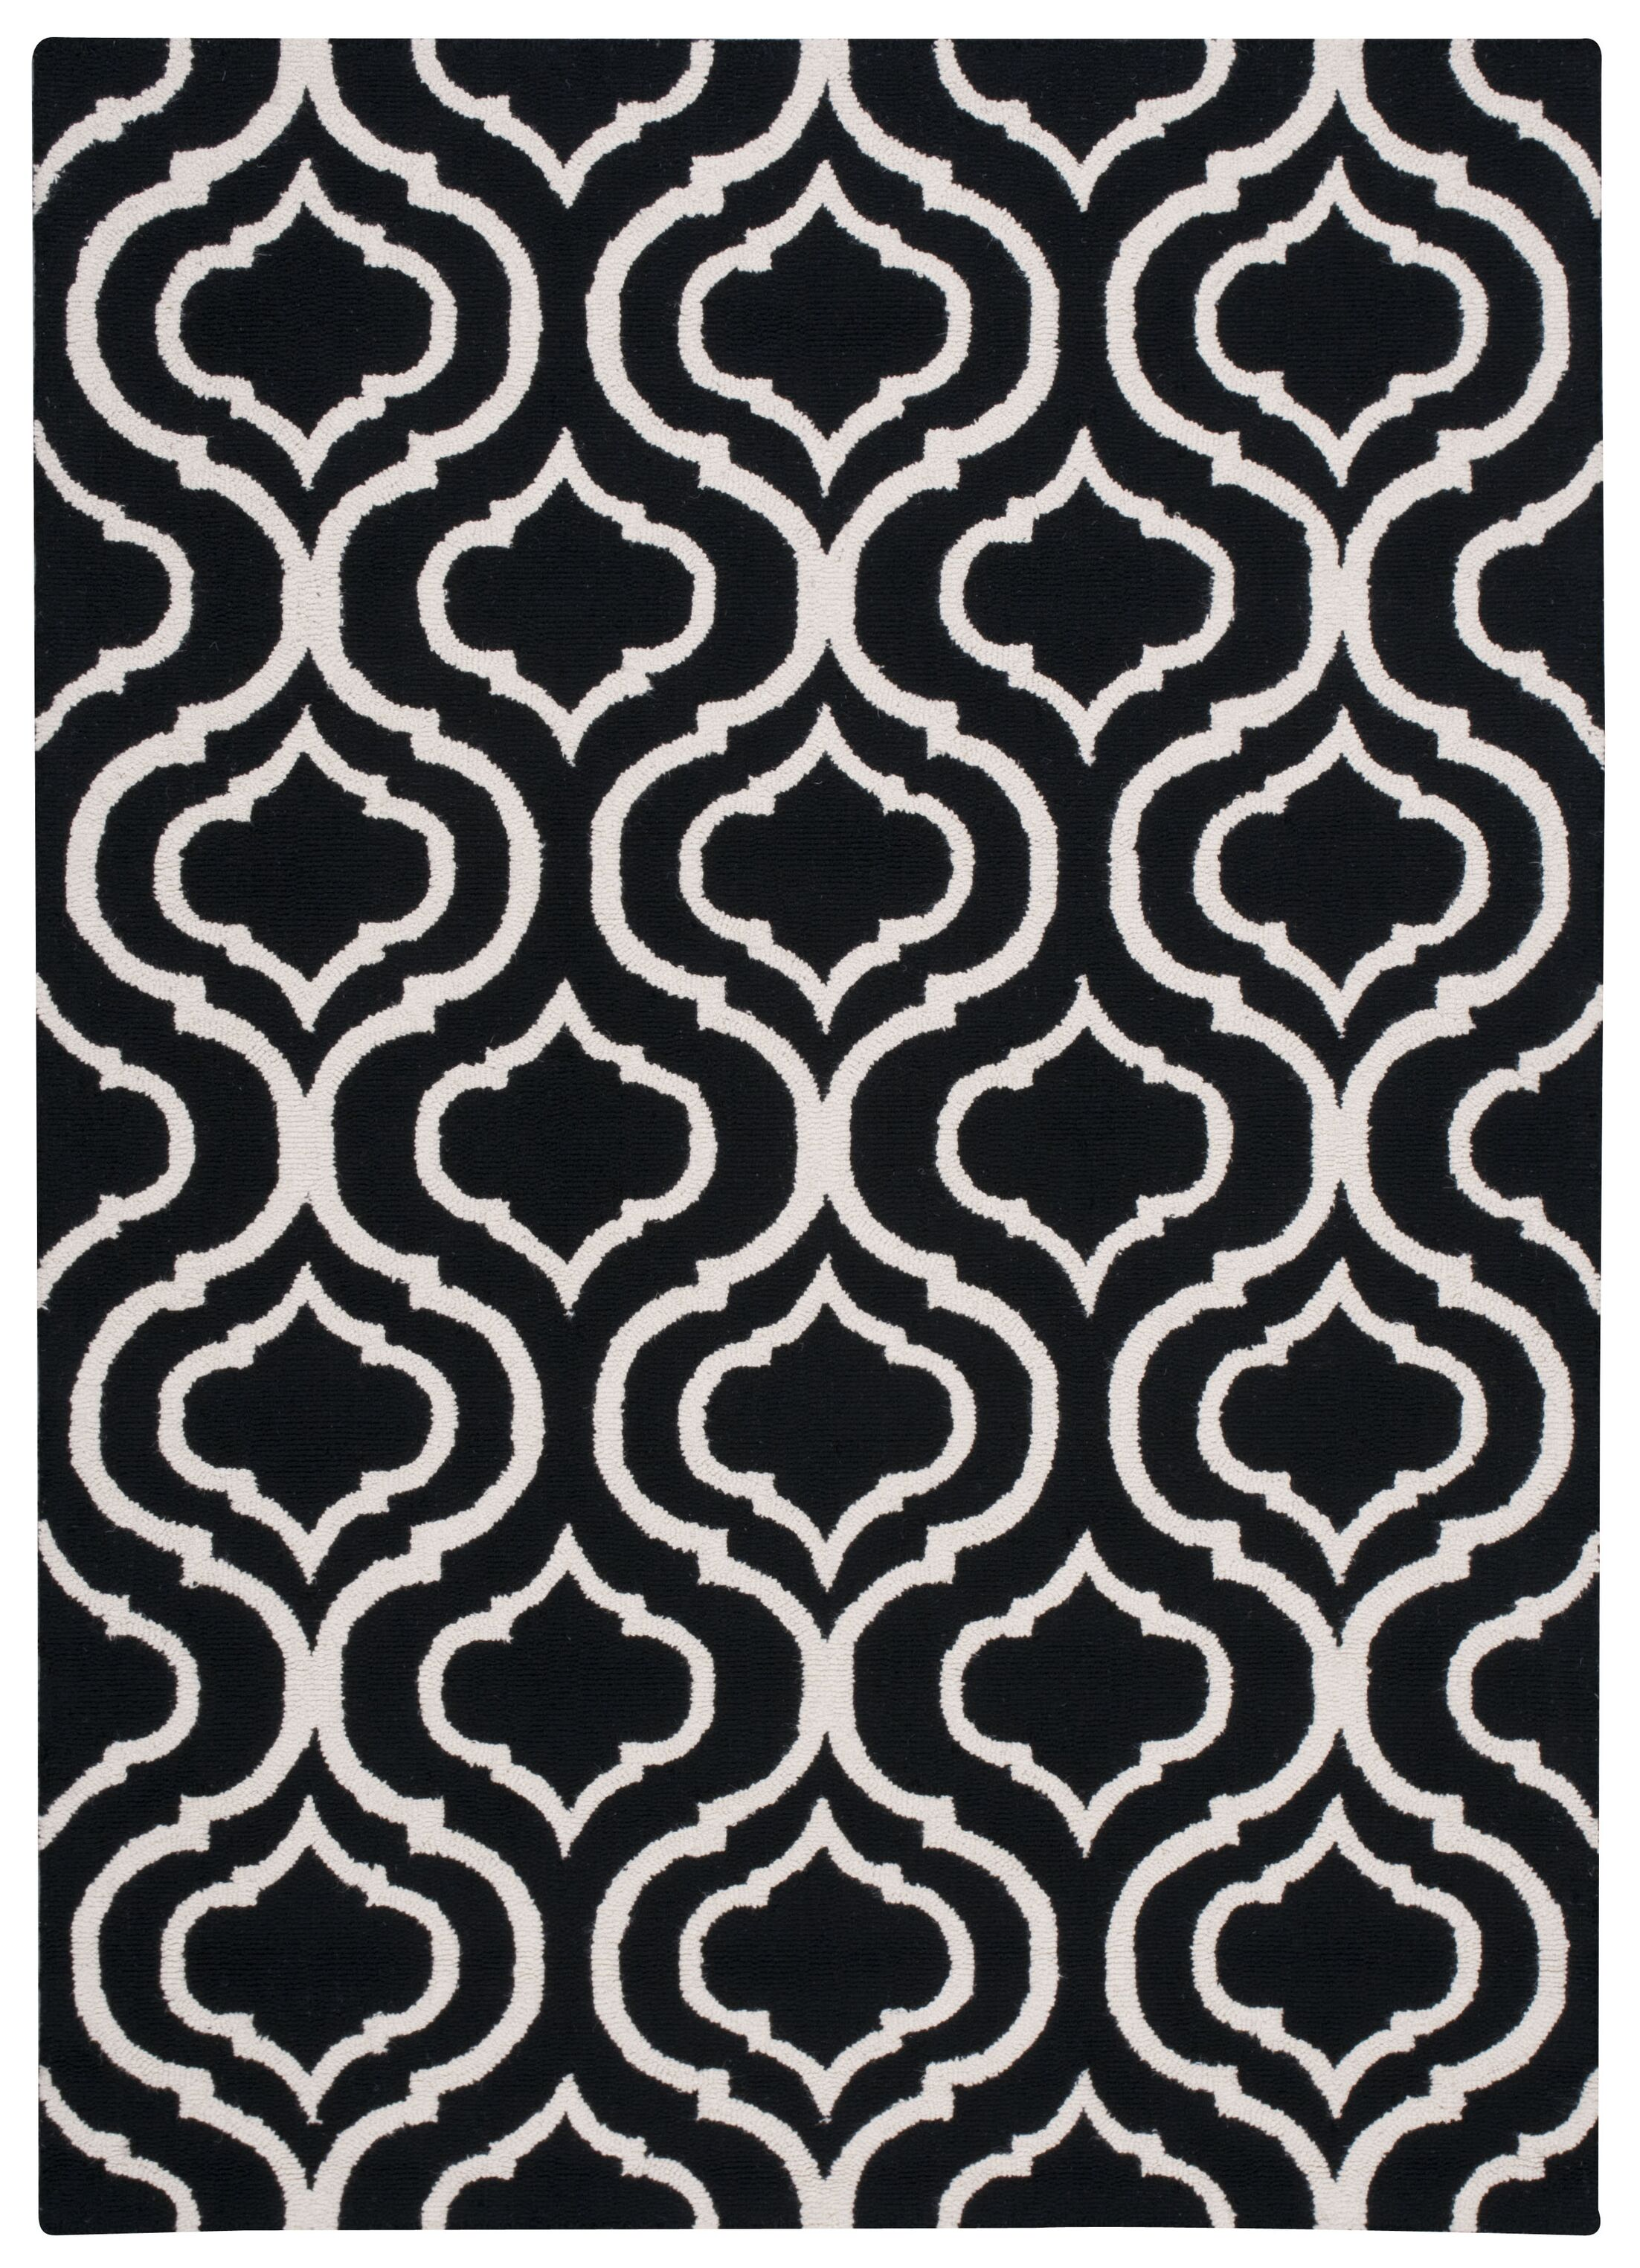 Aidyn Hand-Hooked Black Area Rug Rug Size: Rectangle 7'6